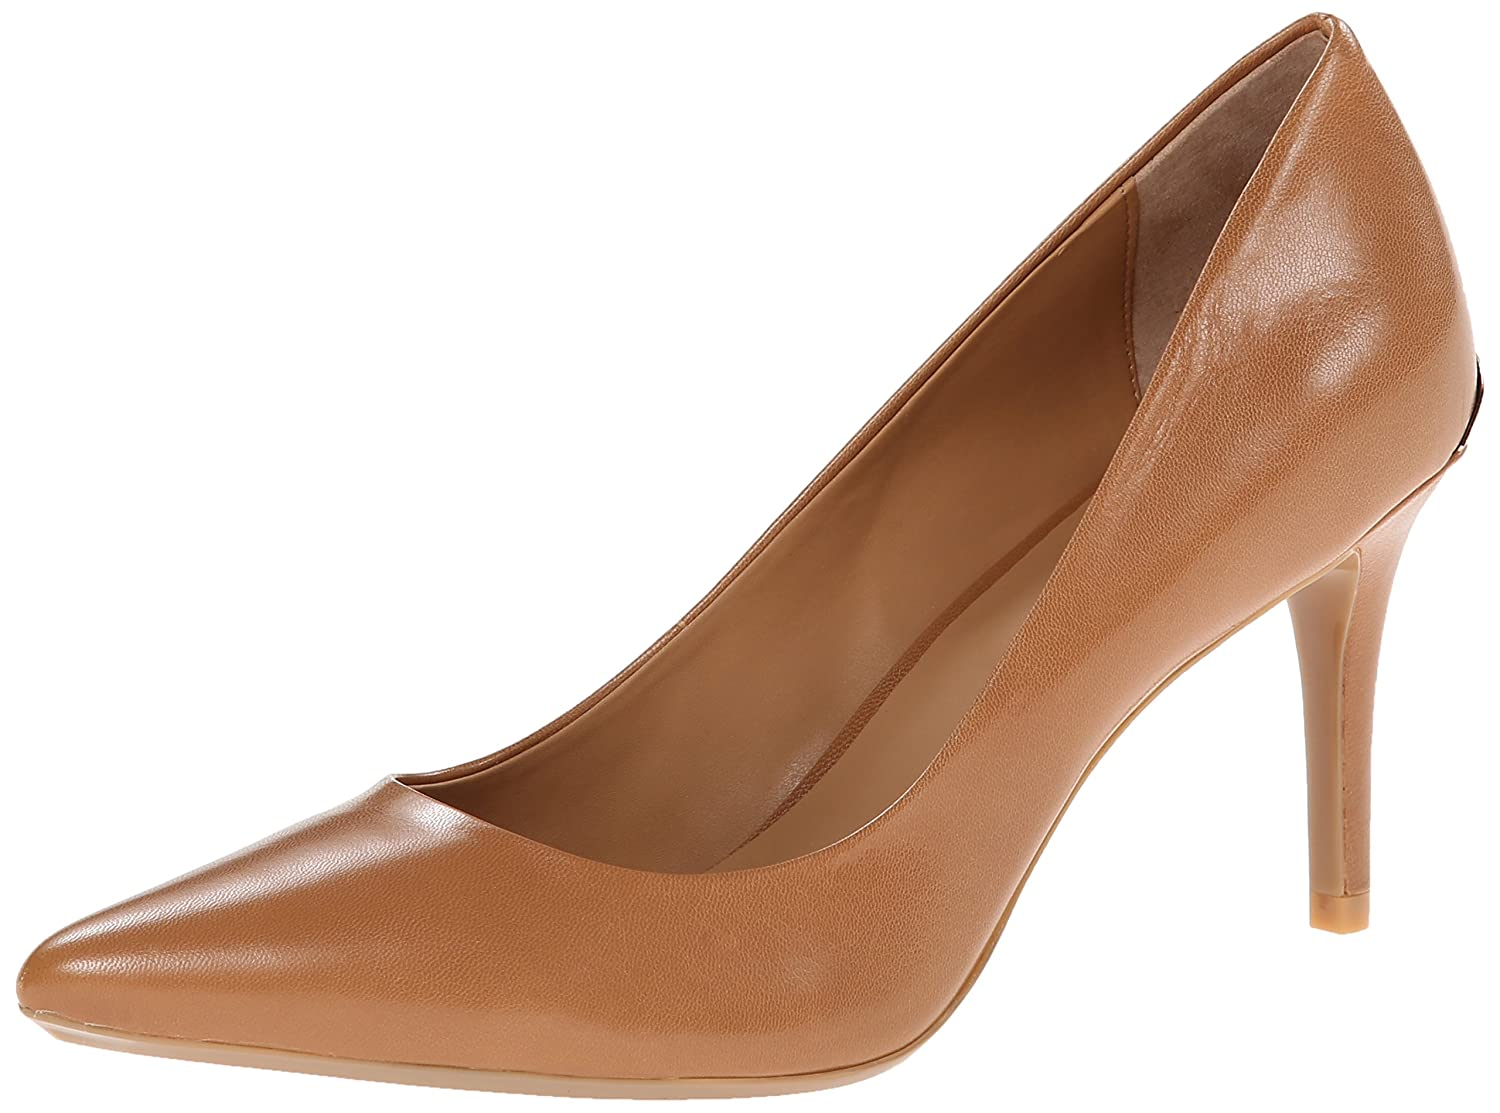 Calvin Klein Women's Gayle Pump B00LH030PY 8.5 B(M) US|Caramel Leather